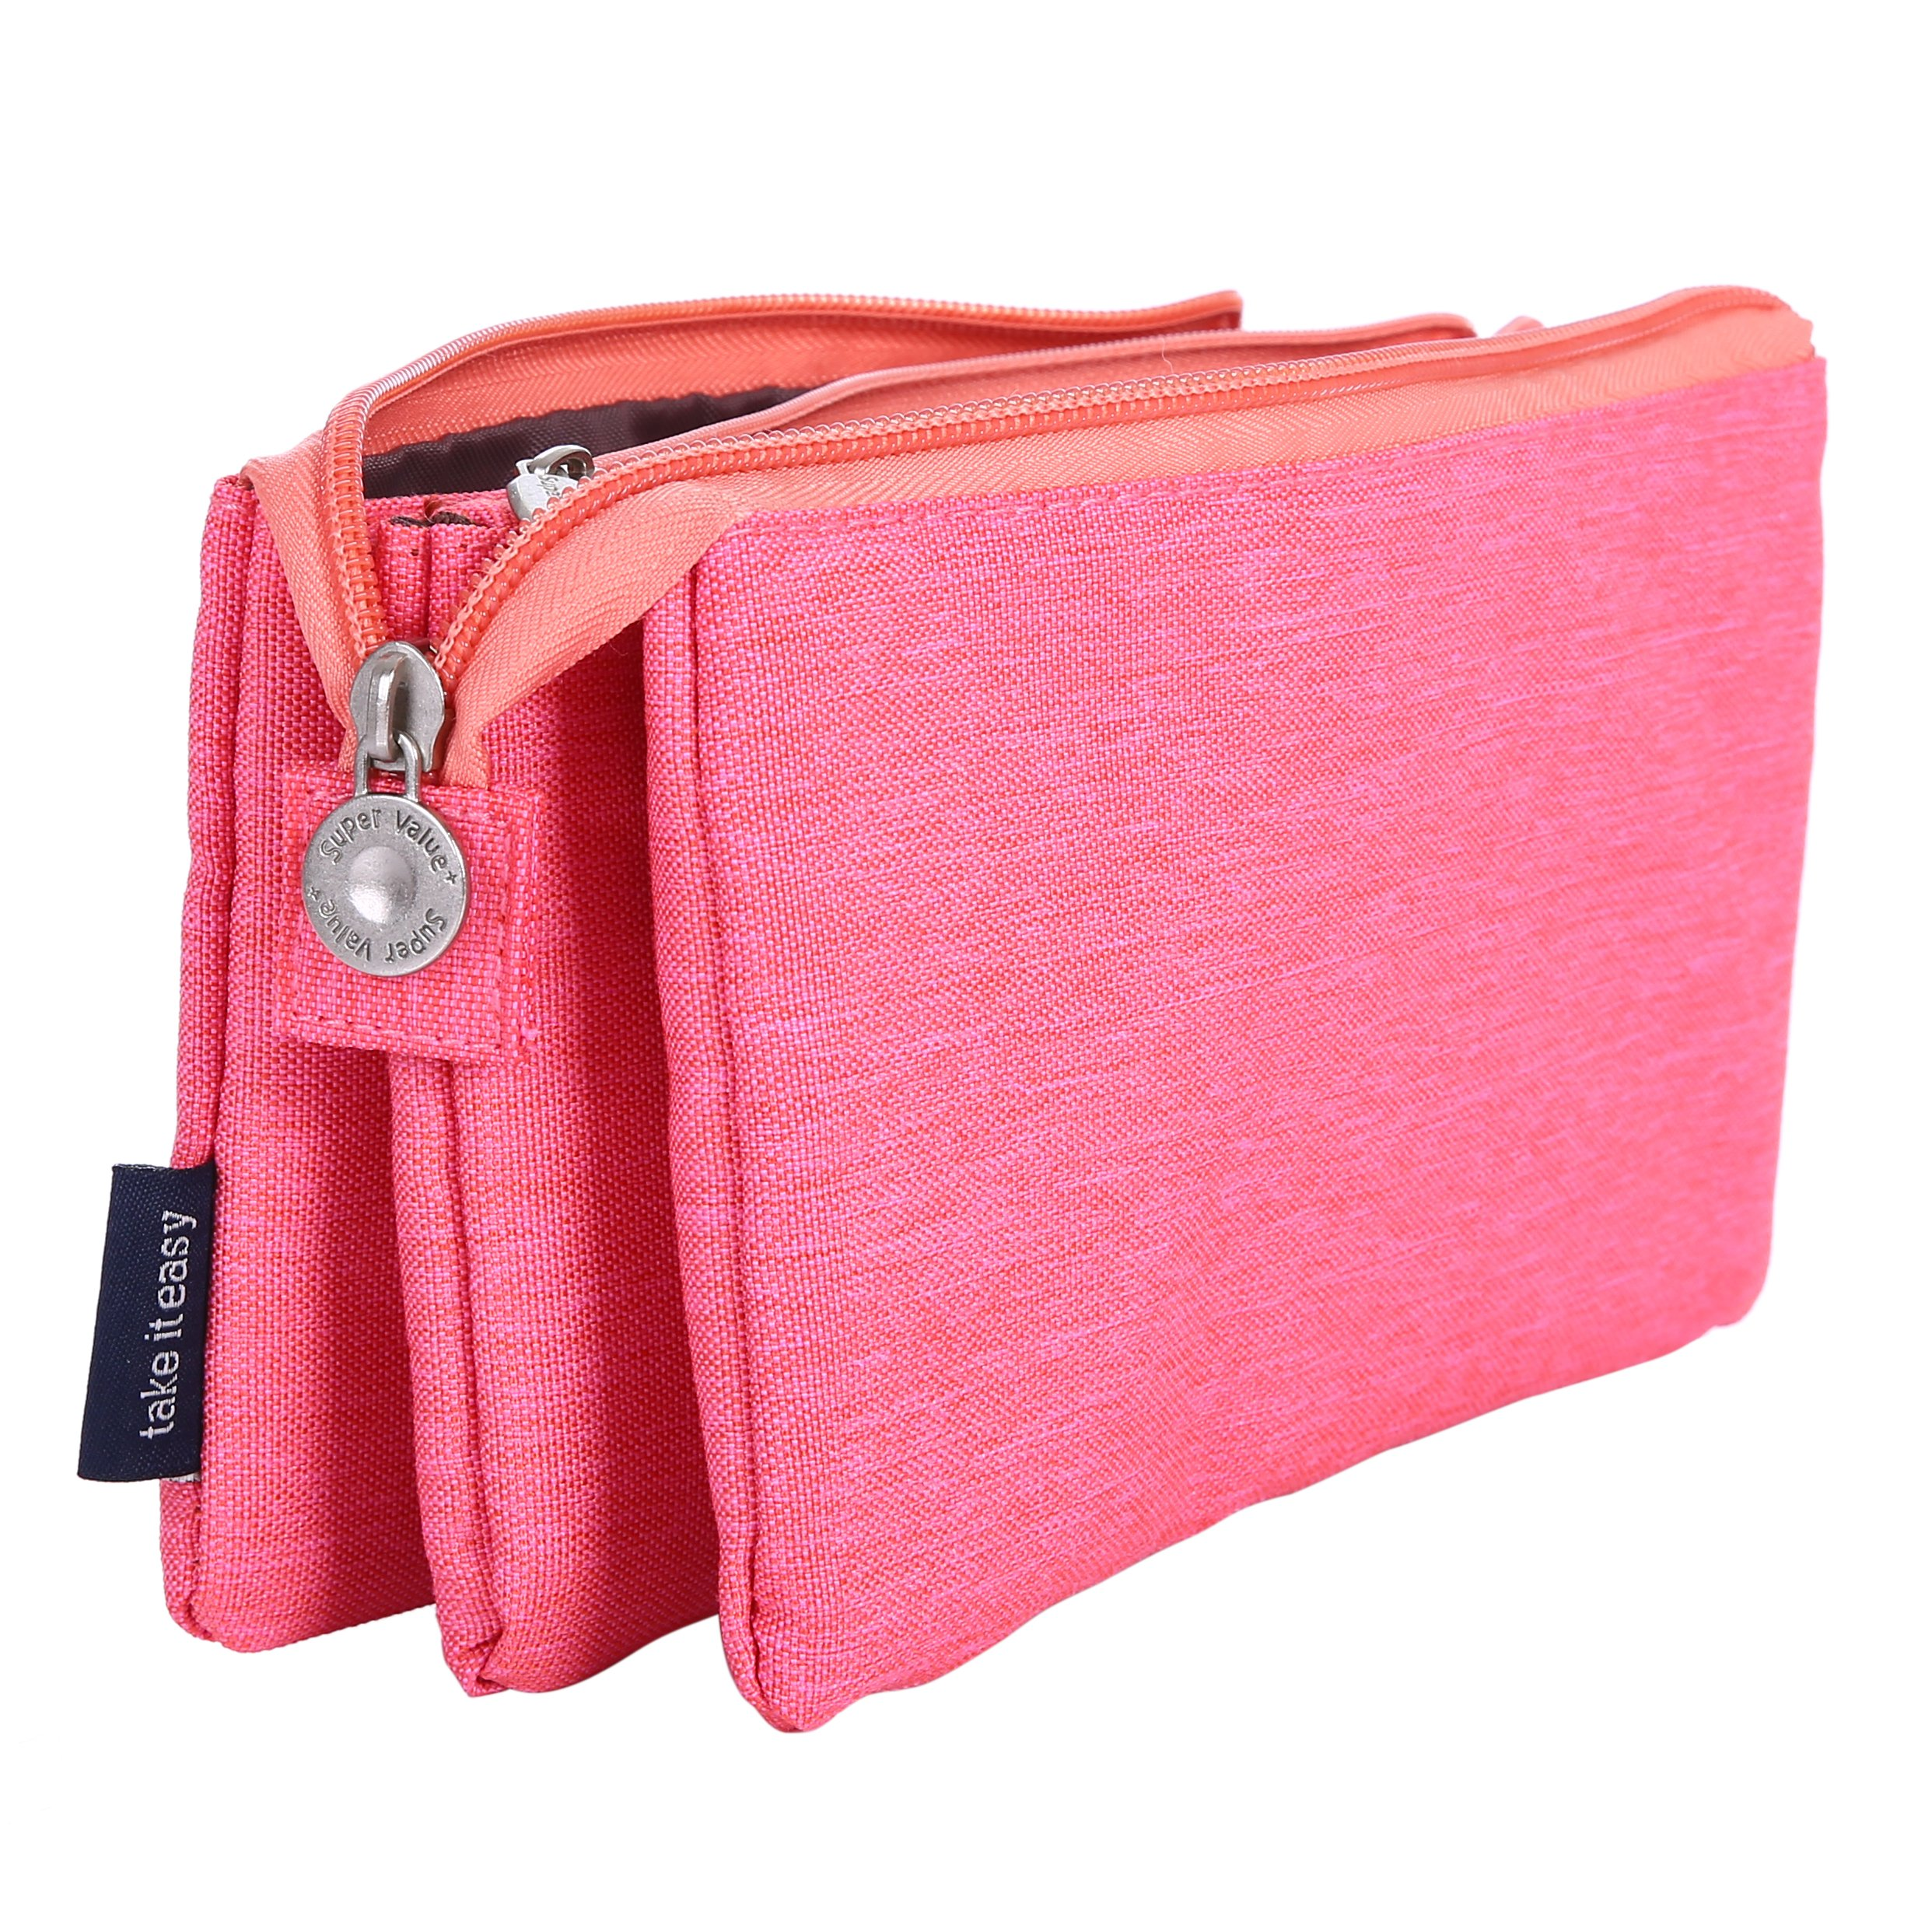 O,Like Super Capacity Pencil Case Three Compartment Pencil Holer Pencil Pouch Pen Bag Cosmetic Bag (rosered)